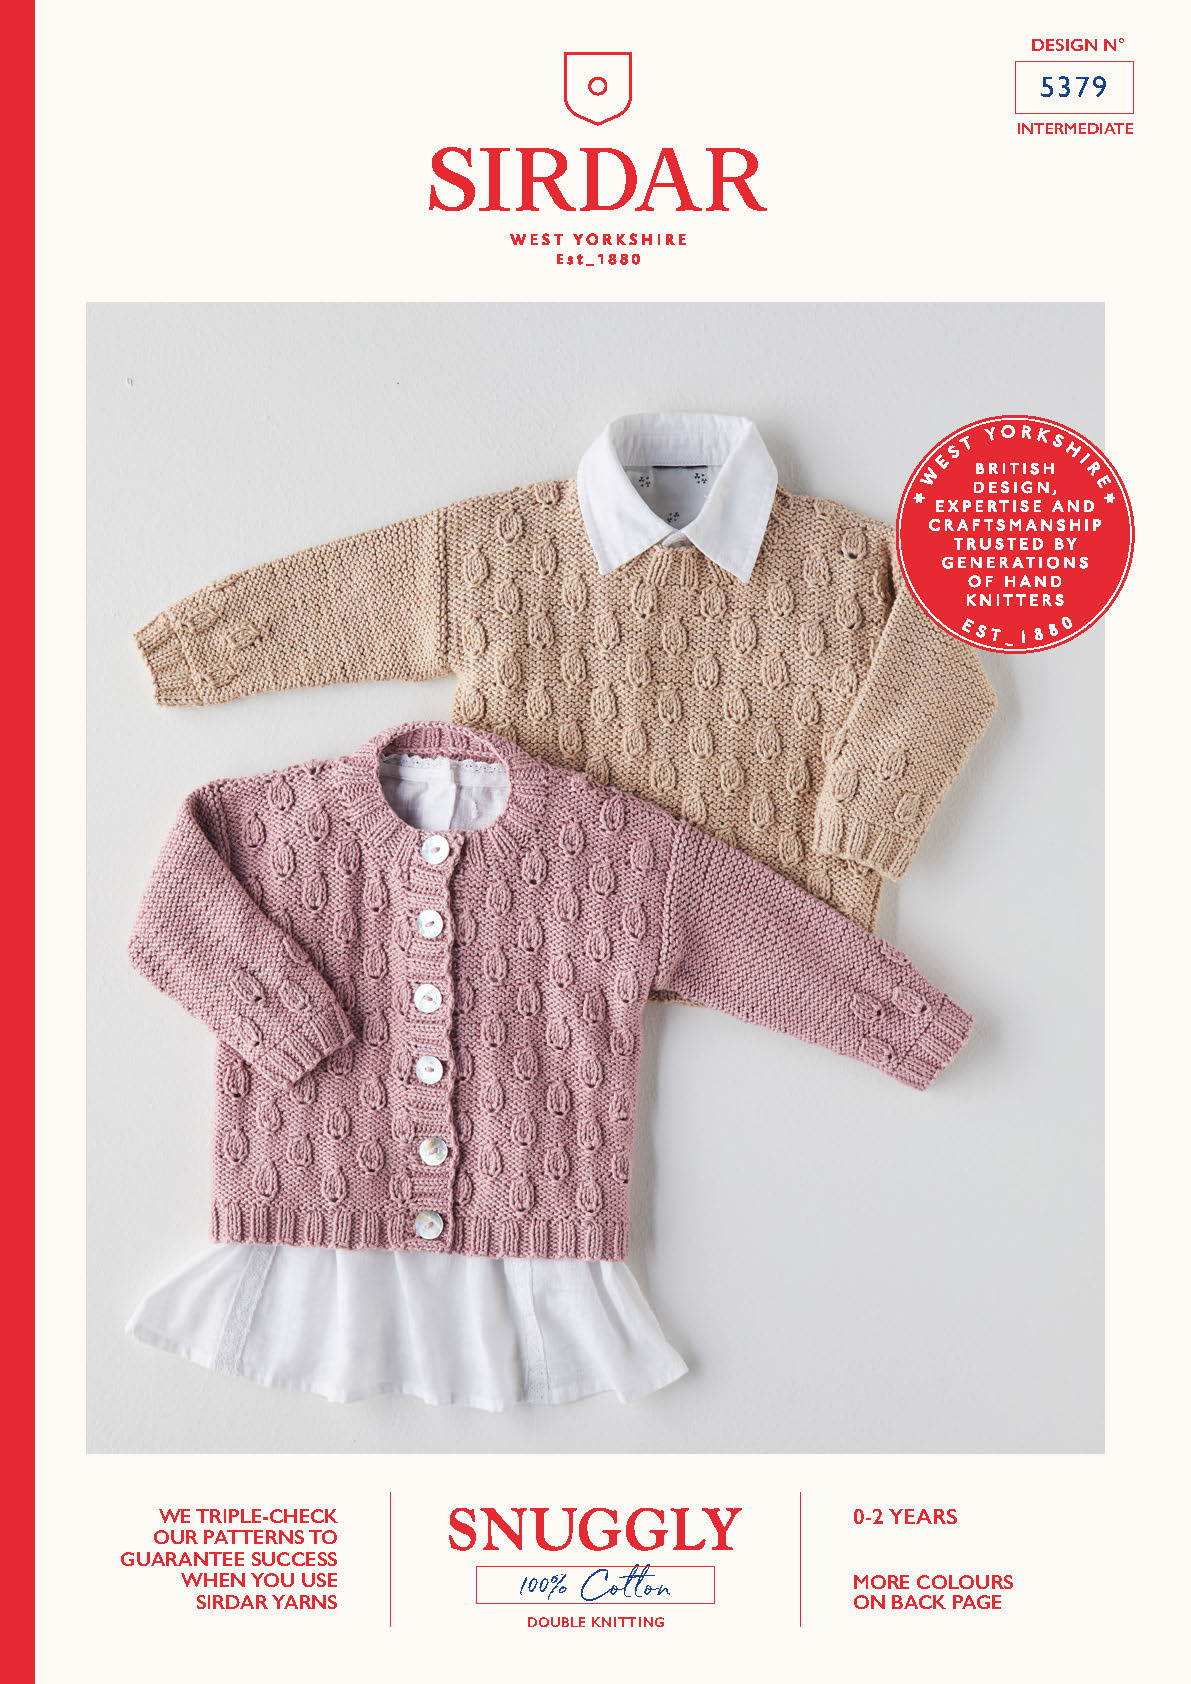 Sirdar Pattern Snuggly 100% Cotton DK 5379 (Download) product image